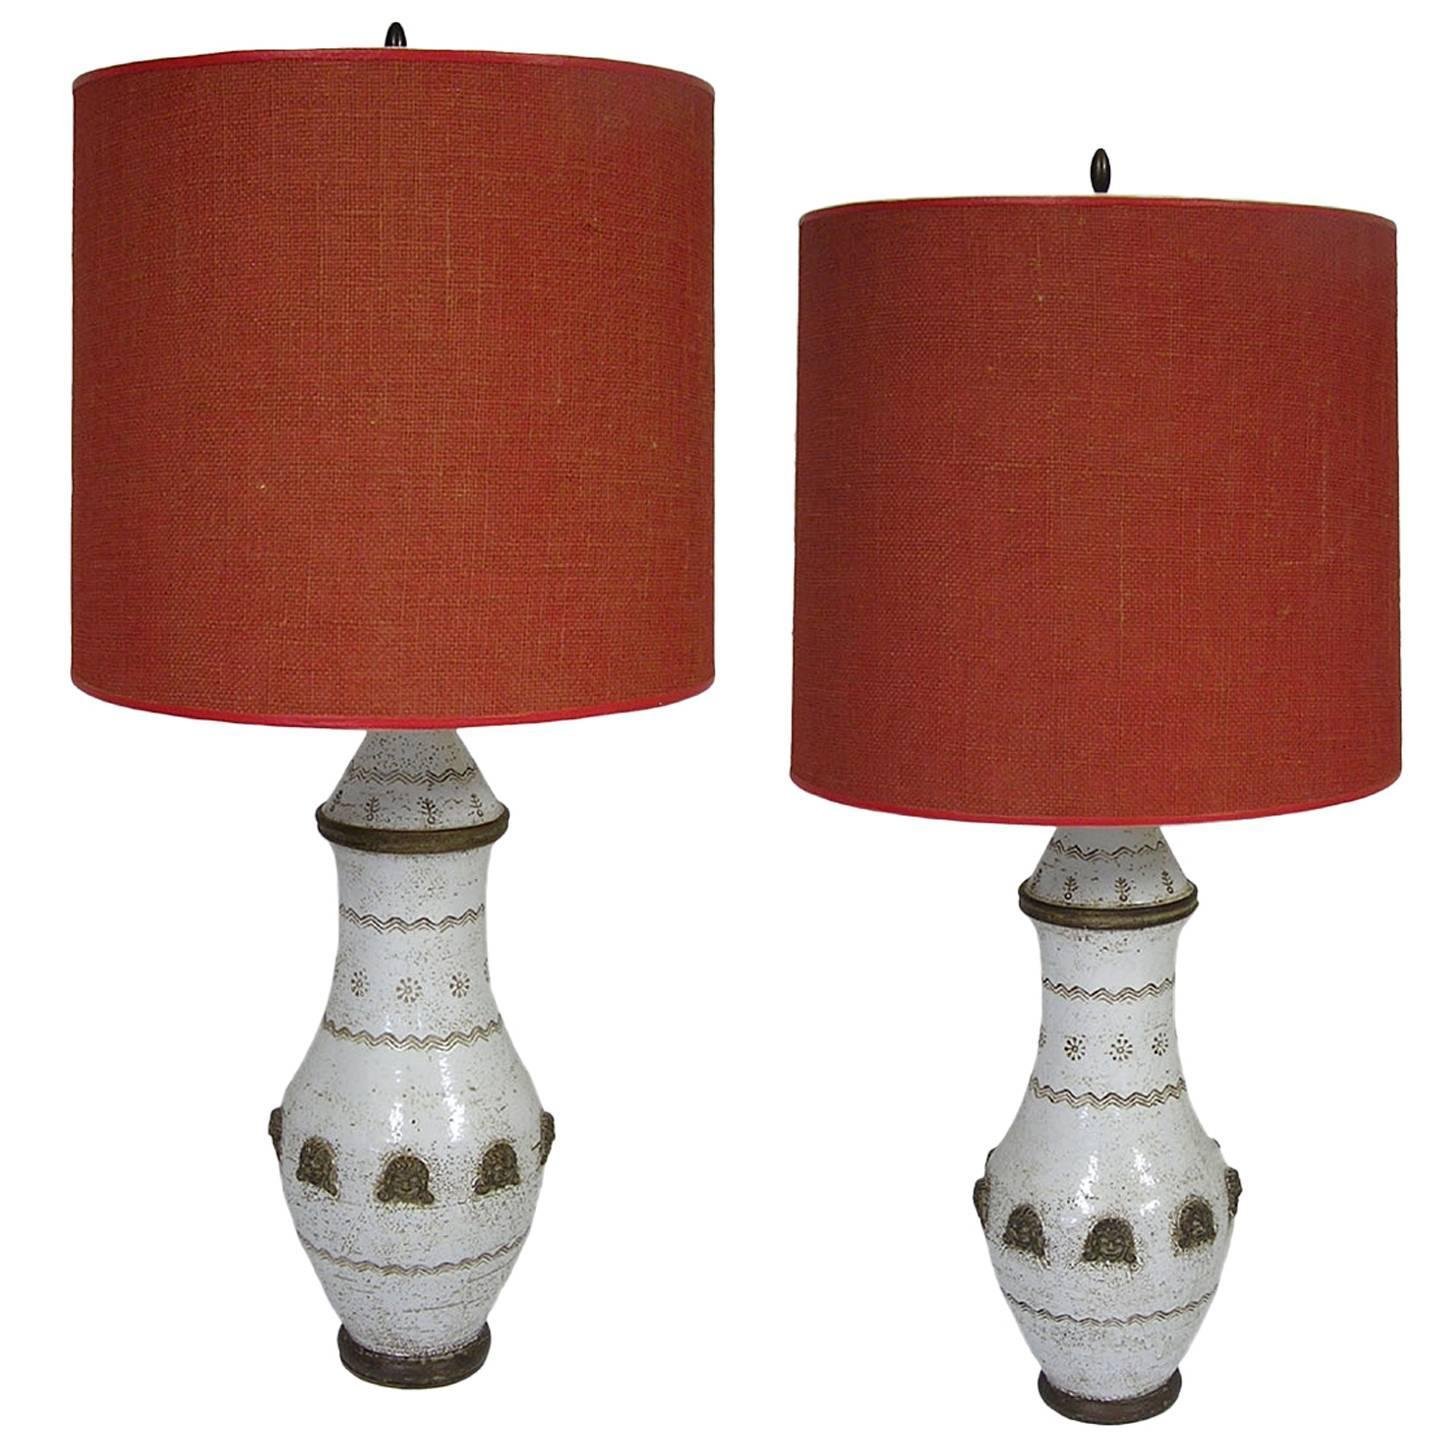 Modern ceramic table lamps - Pair Of Mid Century Modern Italian Pottery Lamps By Ugo Zaccagnini Circa 1950s